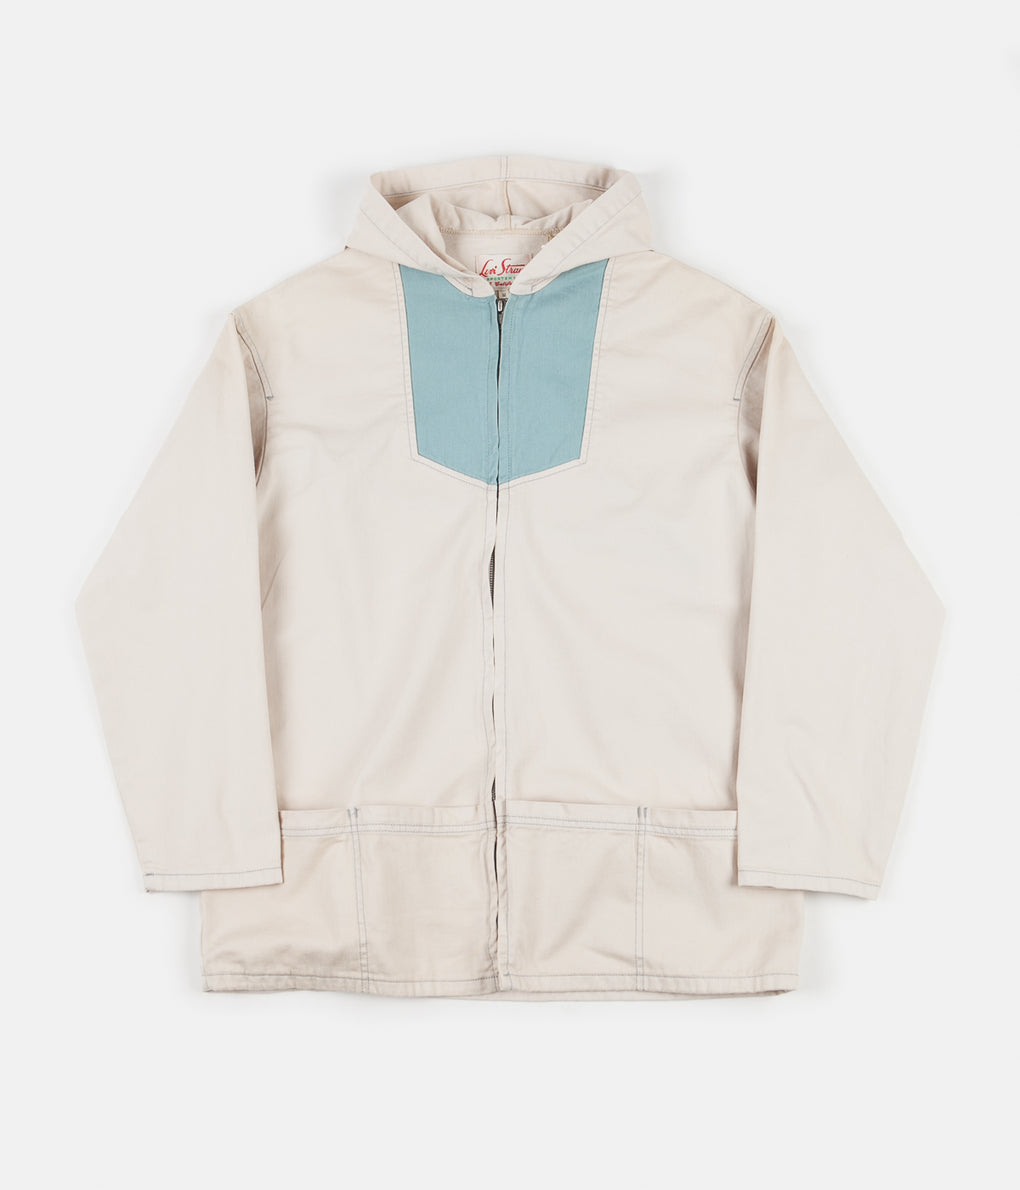 Levi's® Vintage Clothing 1960's Anorak Jacket - Cloud Cream